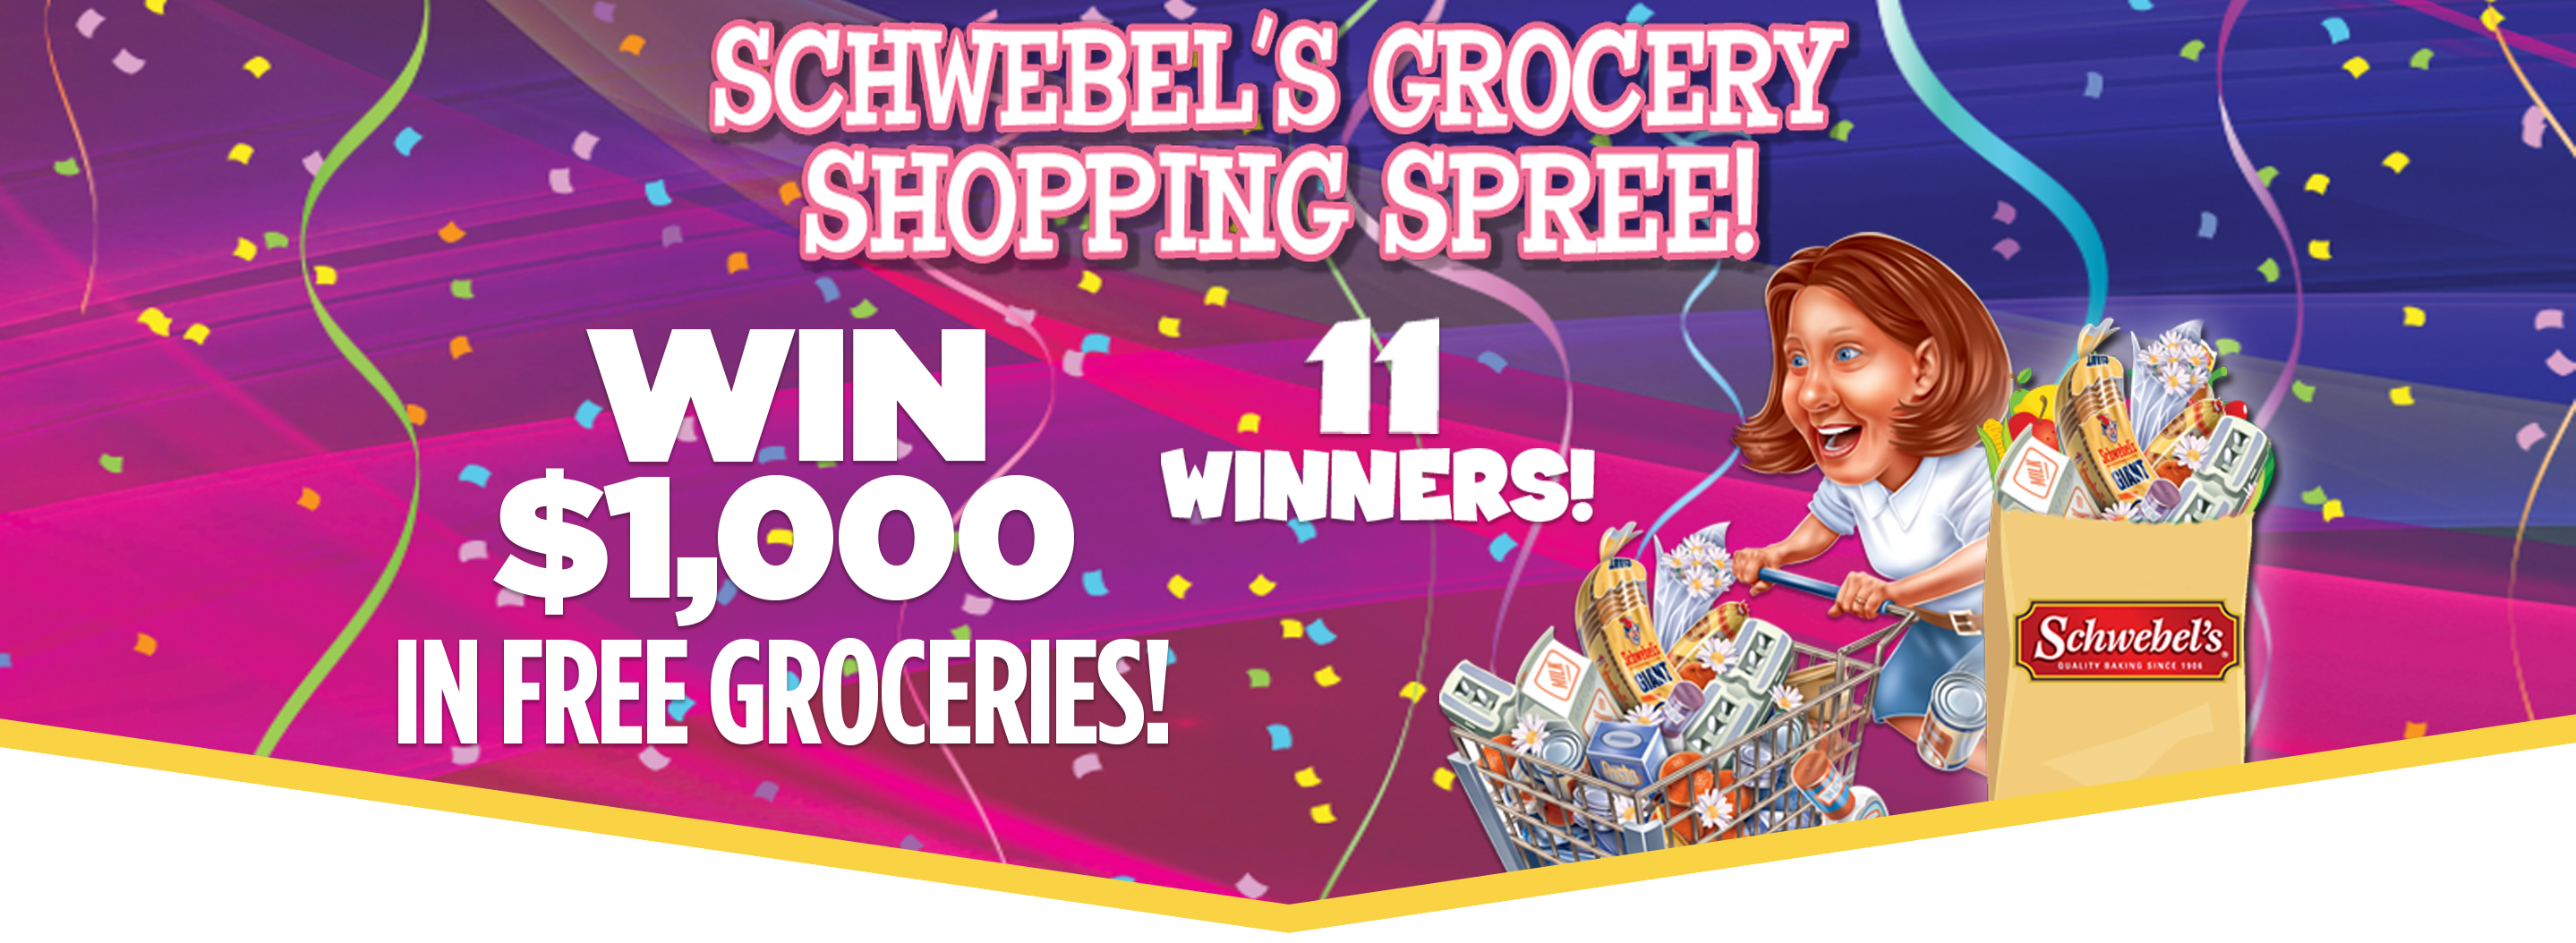 Win Free Groceries in the Schwebel's Grocery Shopping Spree